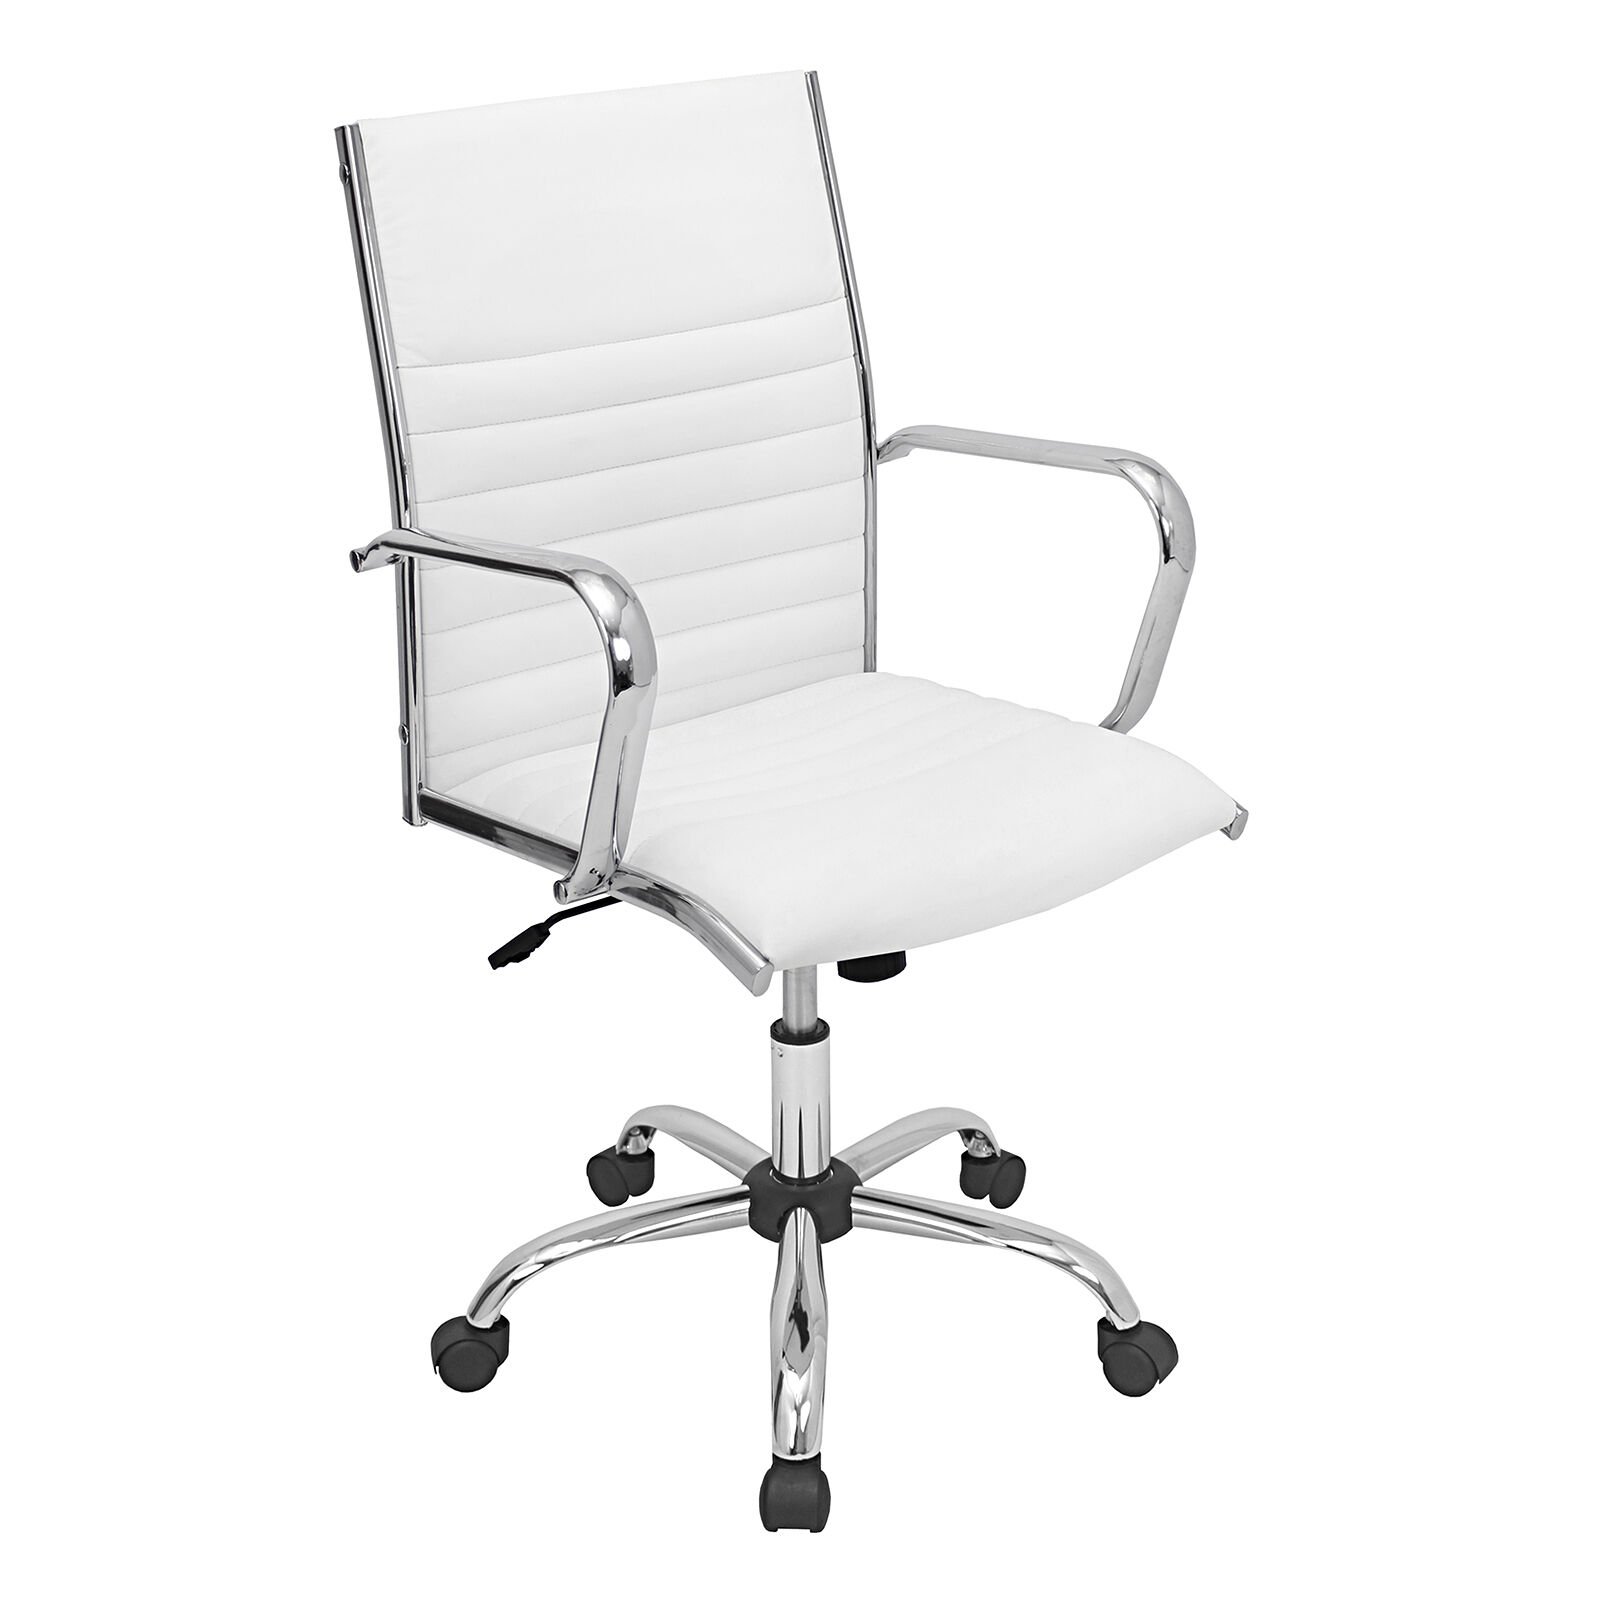 desk chair white old fashioned high master office at home